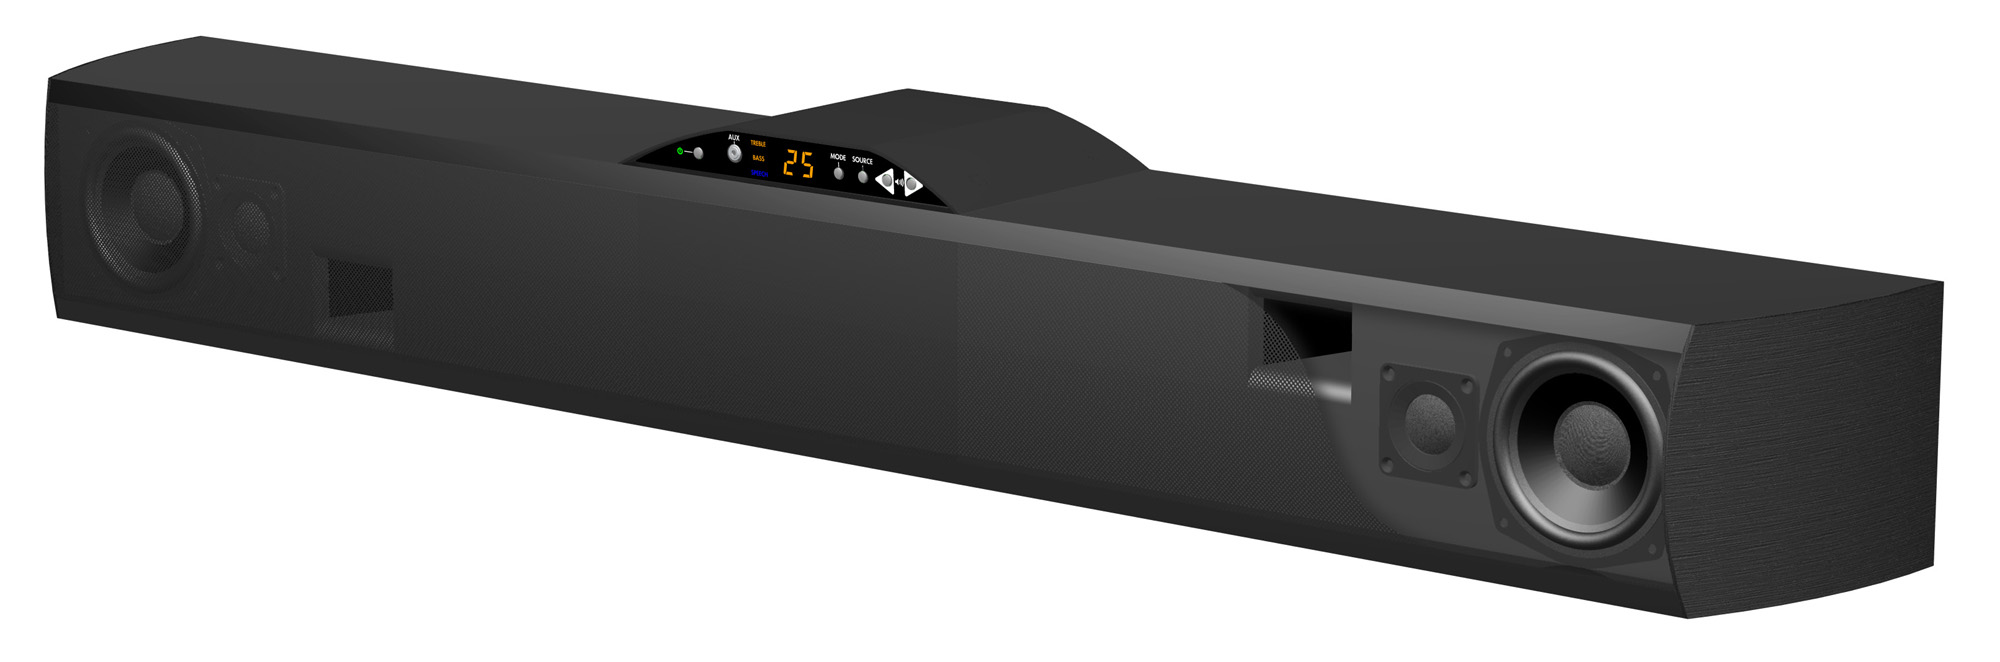 atlantic technology h pas powerbar 235 soundbar preview